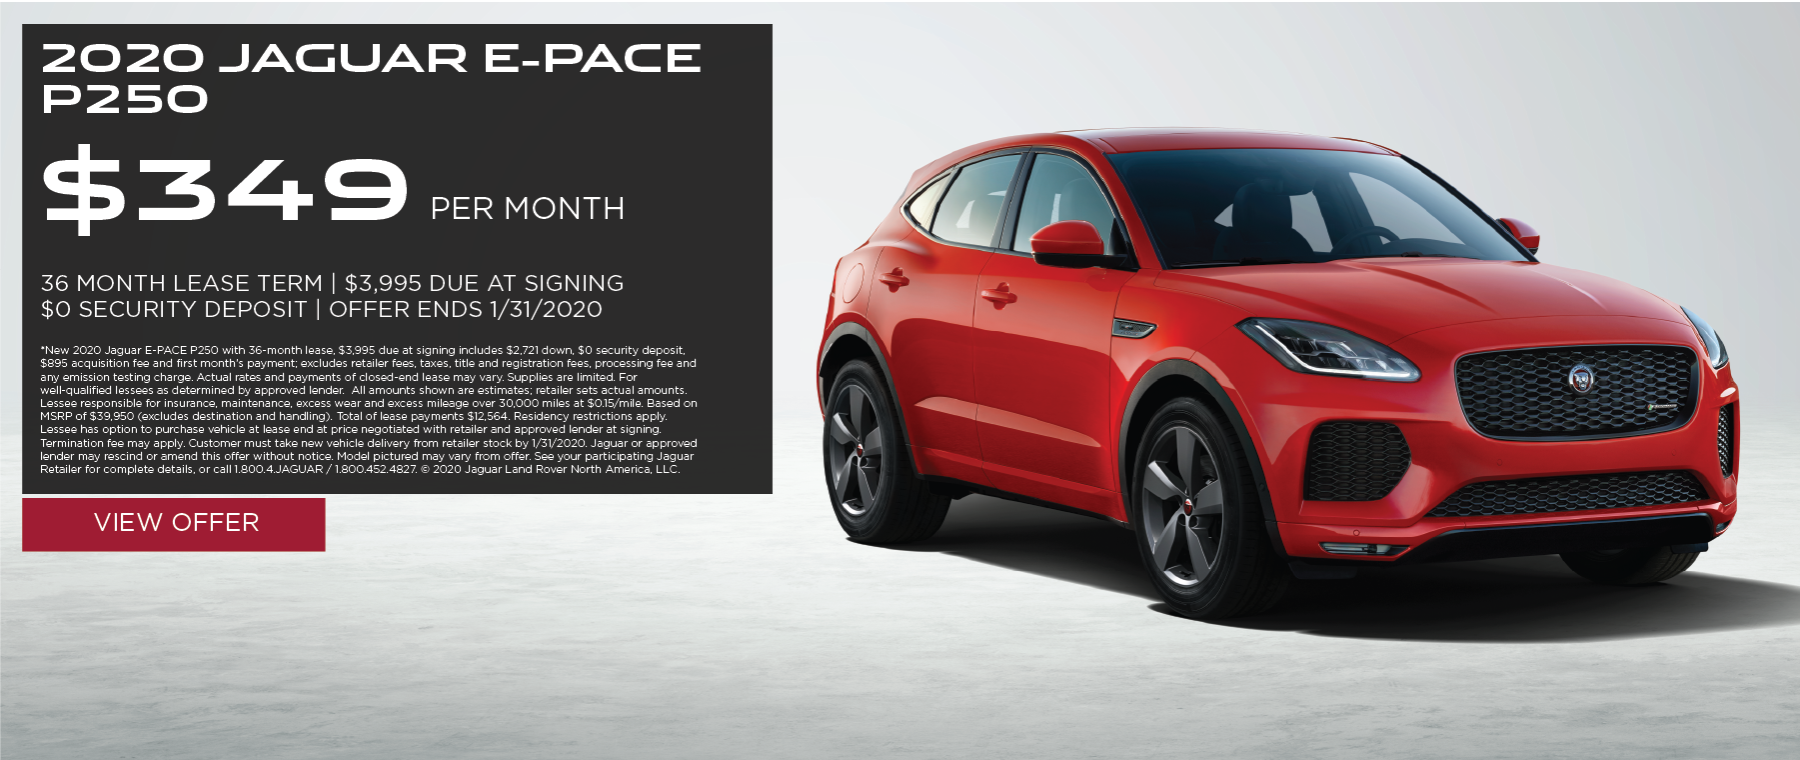 2020 Jaguar E-PACE P250 | $349/month | 36-month lease | 10,000 miles/year | $3,995 due at signing | $0 security deposit | expires 1/31/2020